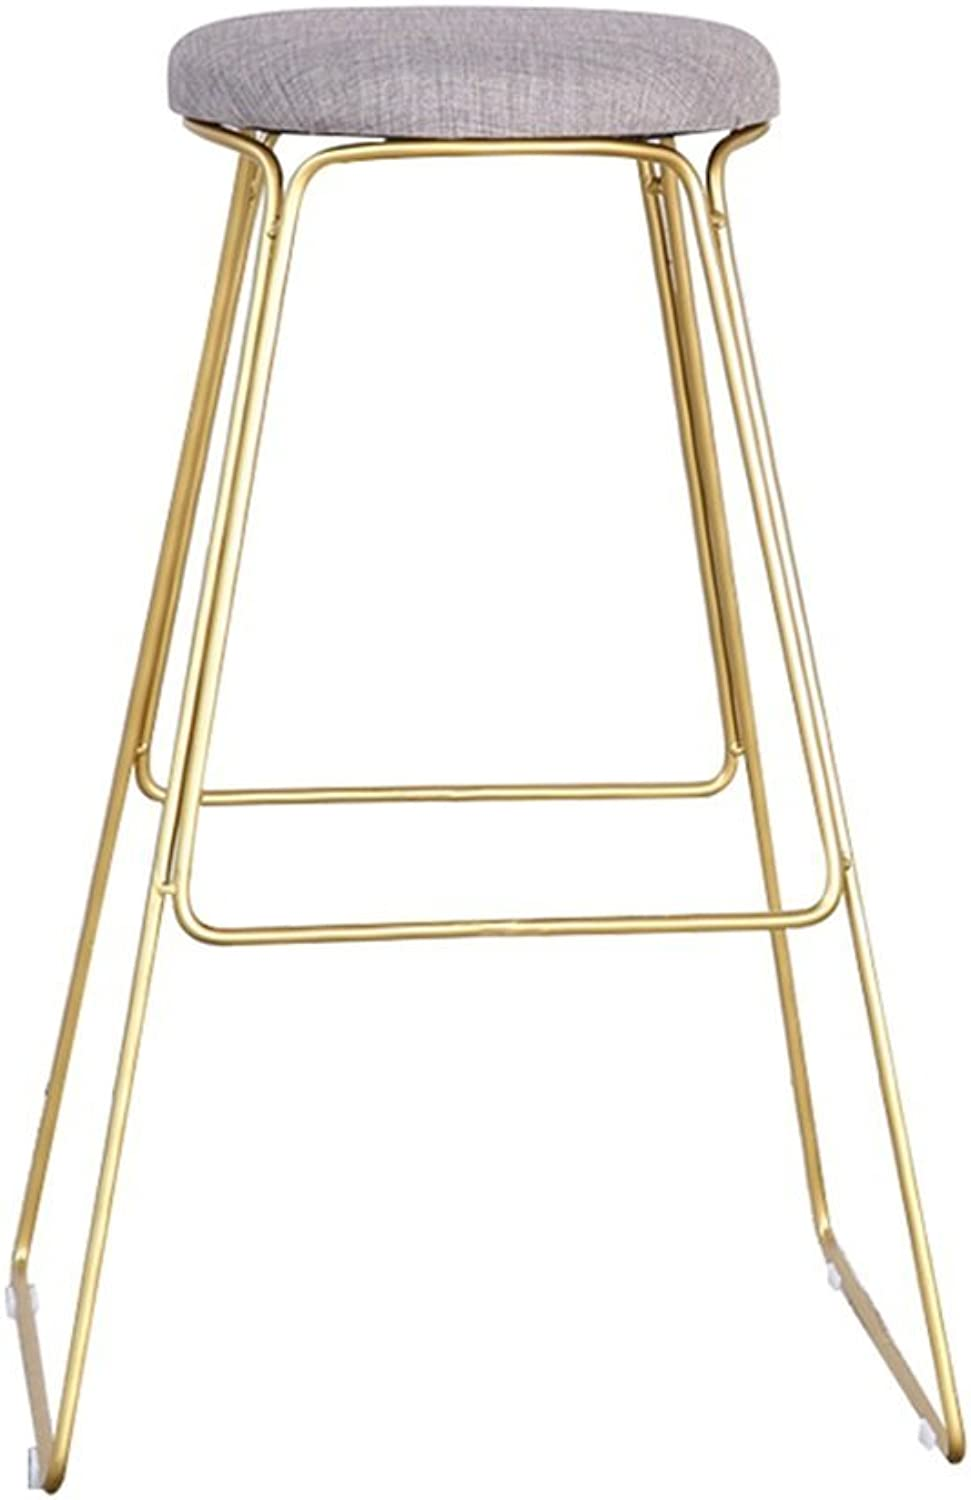 High Stool Bar Kitchen Breakfast Stool Dining Chair Padded Seat Tall Chair Bar Stool Counter Chair gold (Size   65CM)